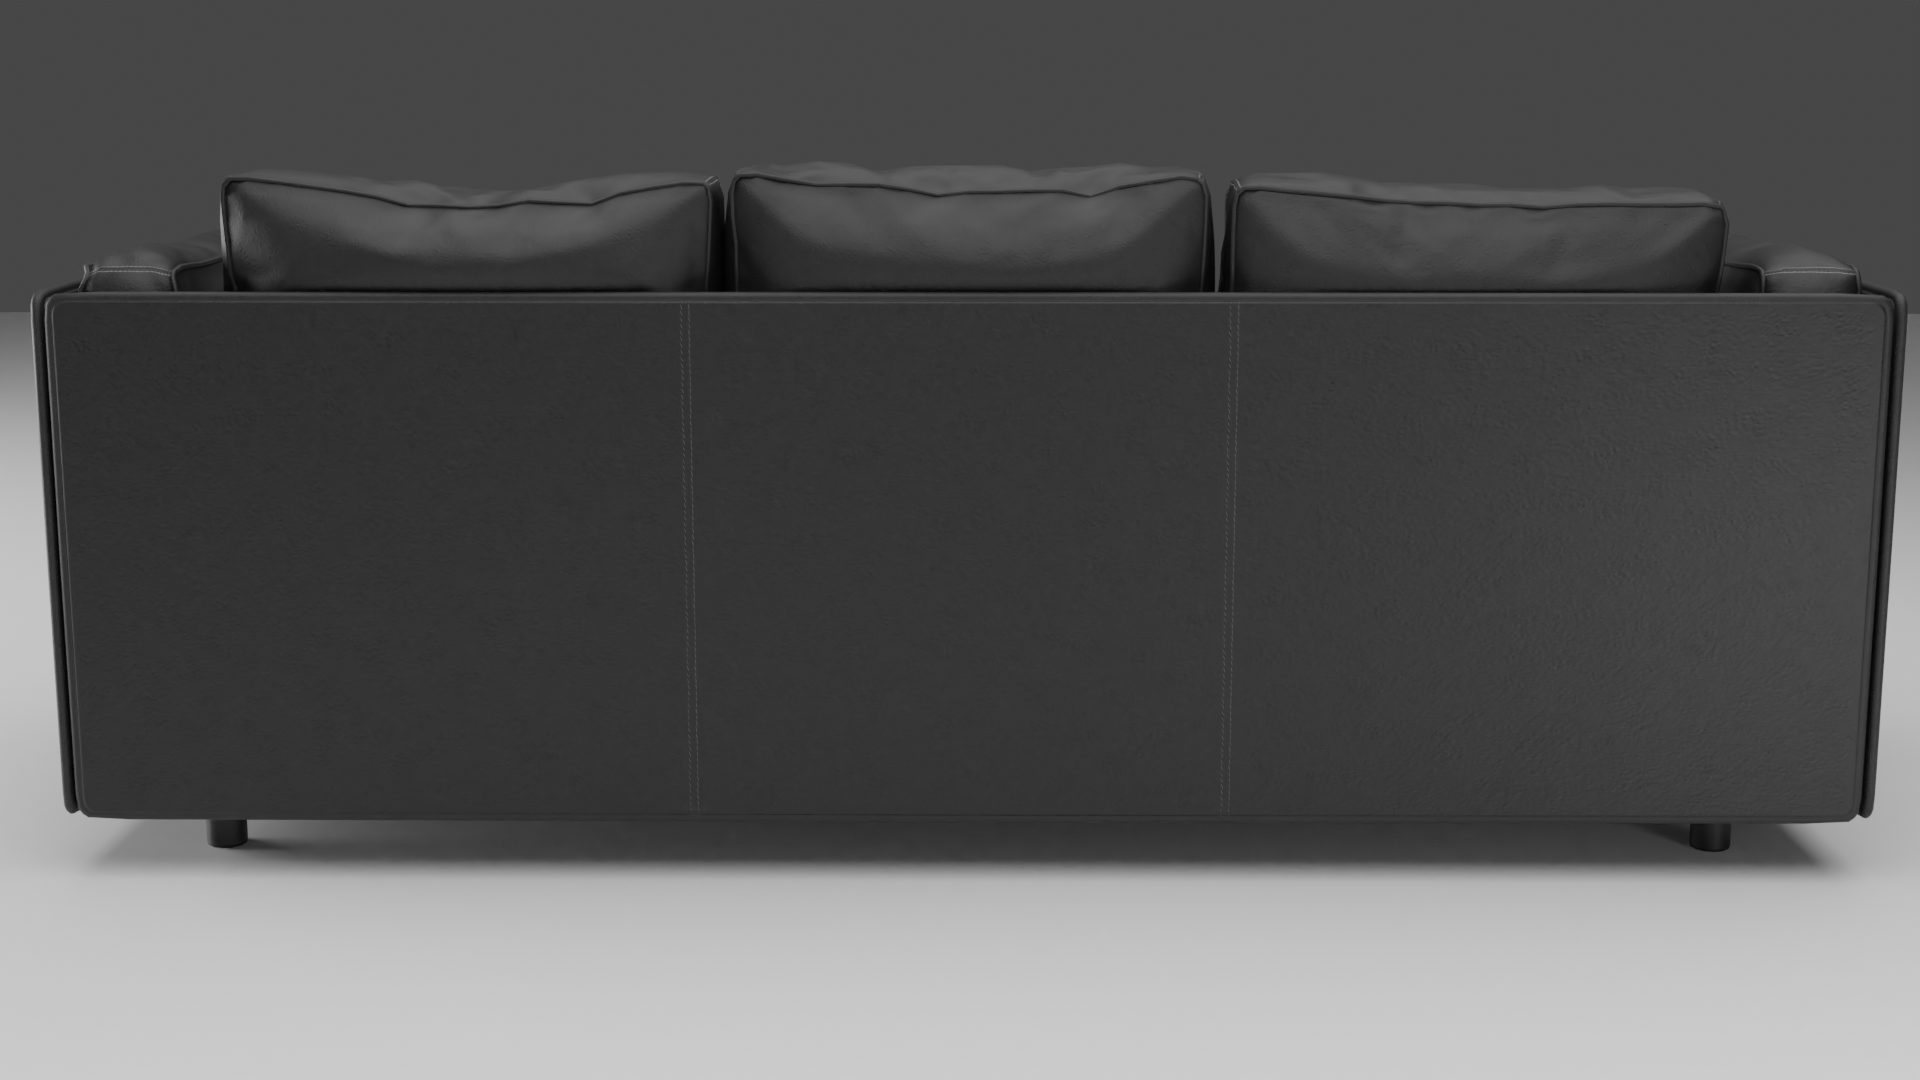 Leather Sofa preview image 2